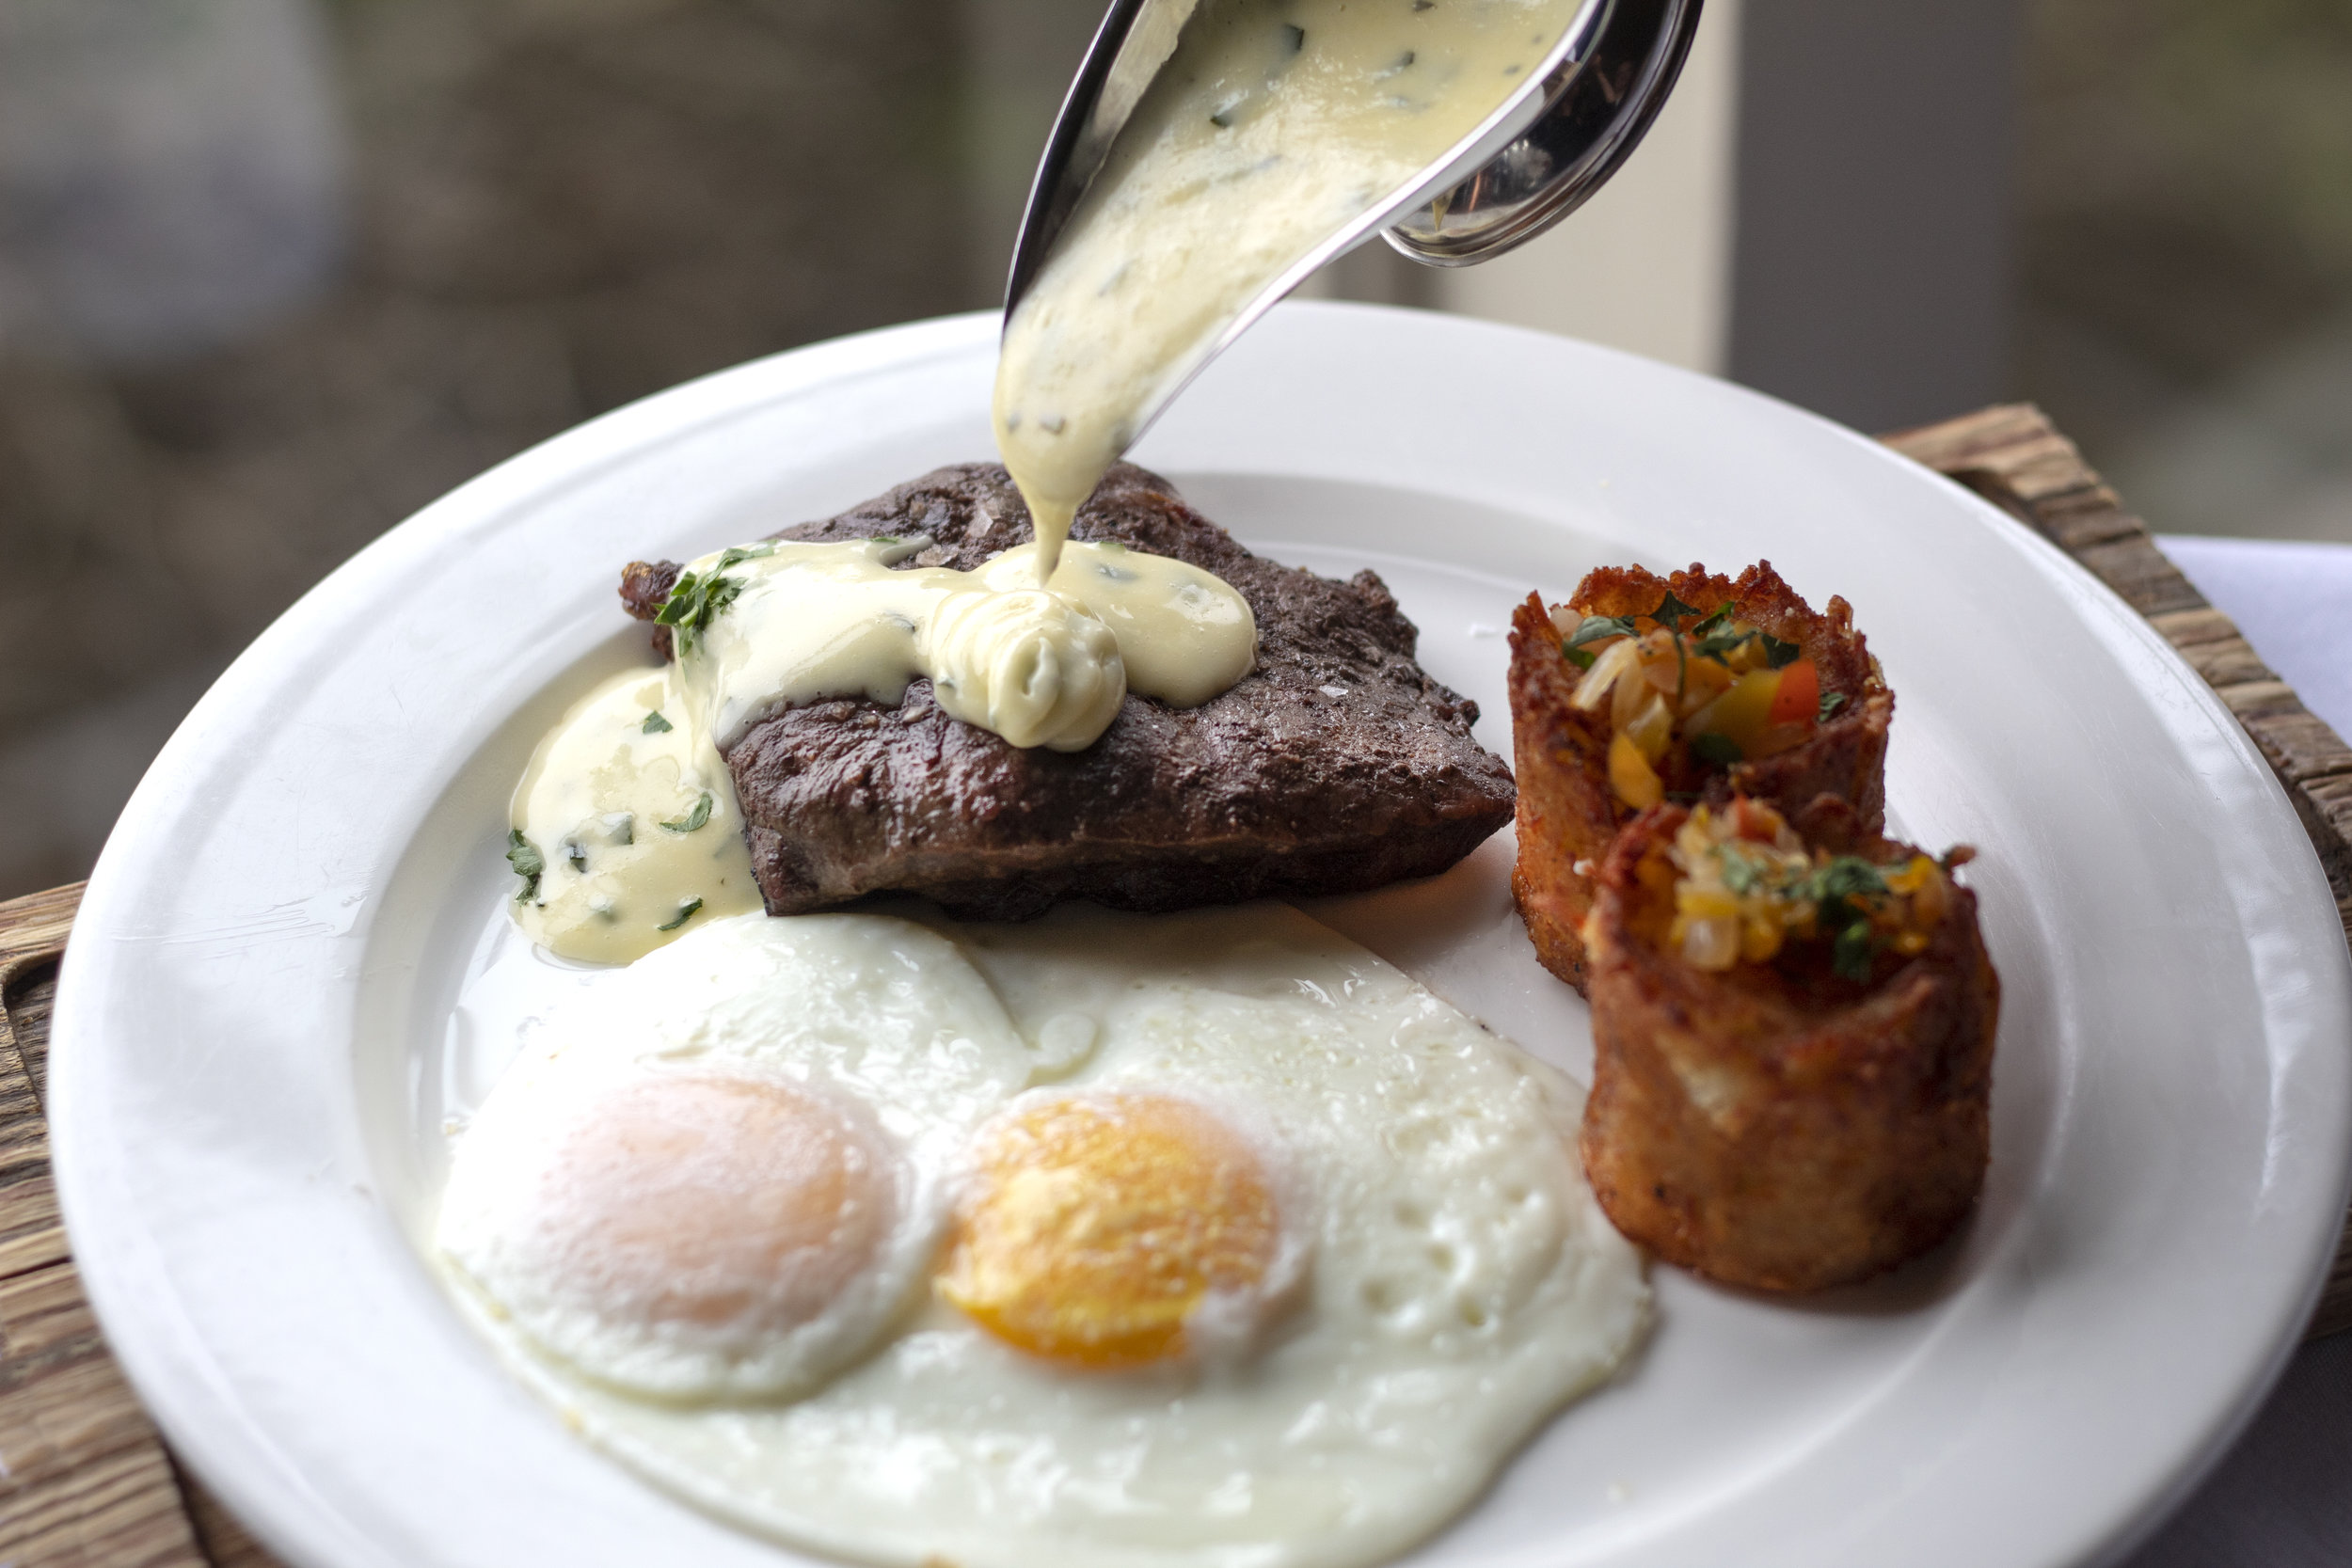 Steak-eggs-hashbrowns_0651-a.jpg